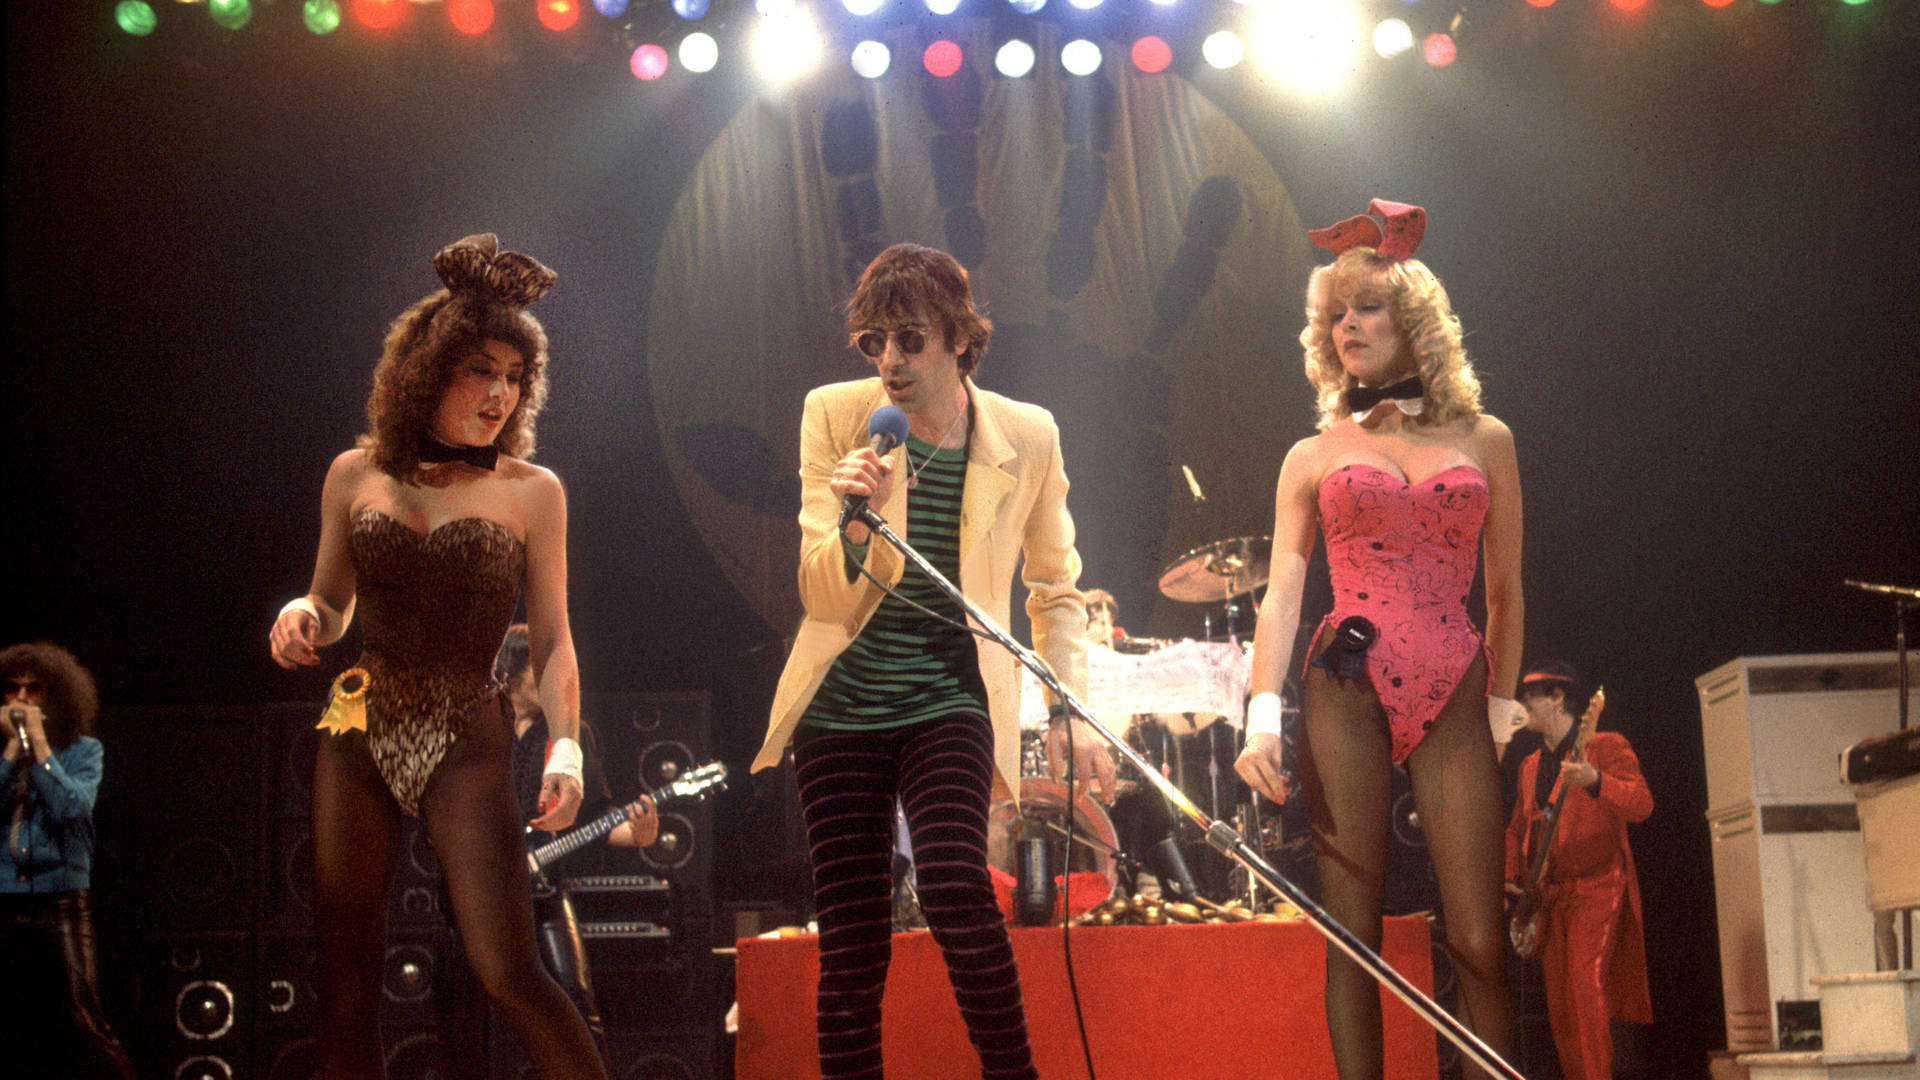 The J Geils Band celebrates the release of its single 'Centerfold' at the Uptown Theater in Chicago, Ill. on November 19, 1981. Photo: Paul Natkin/Getty Images